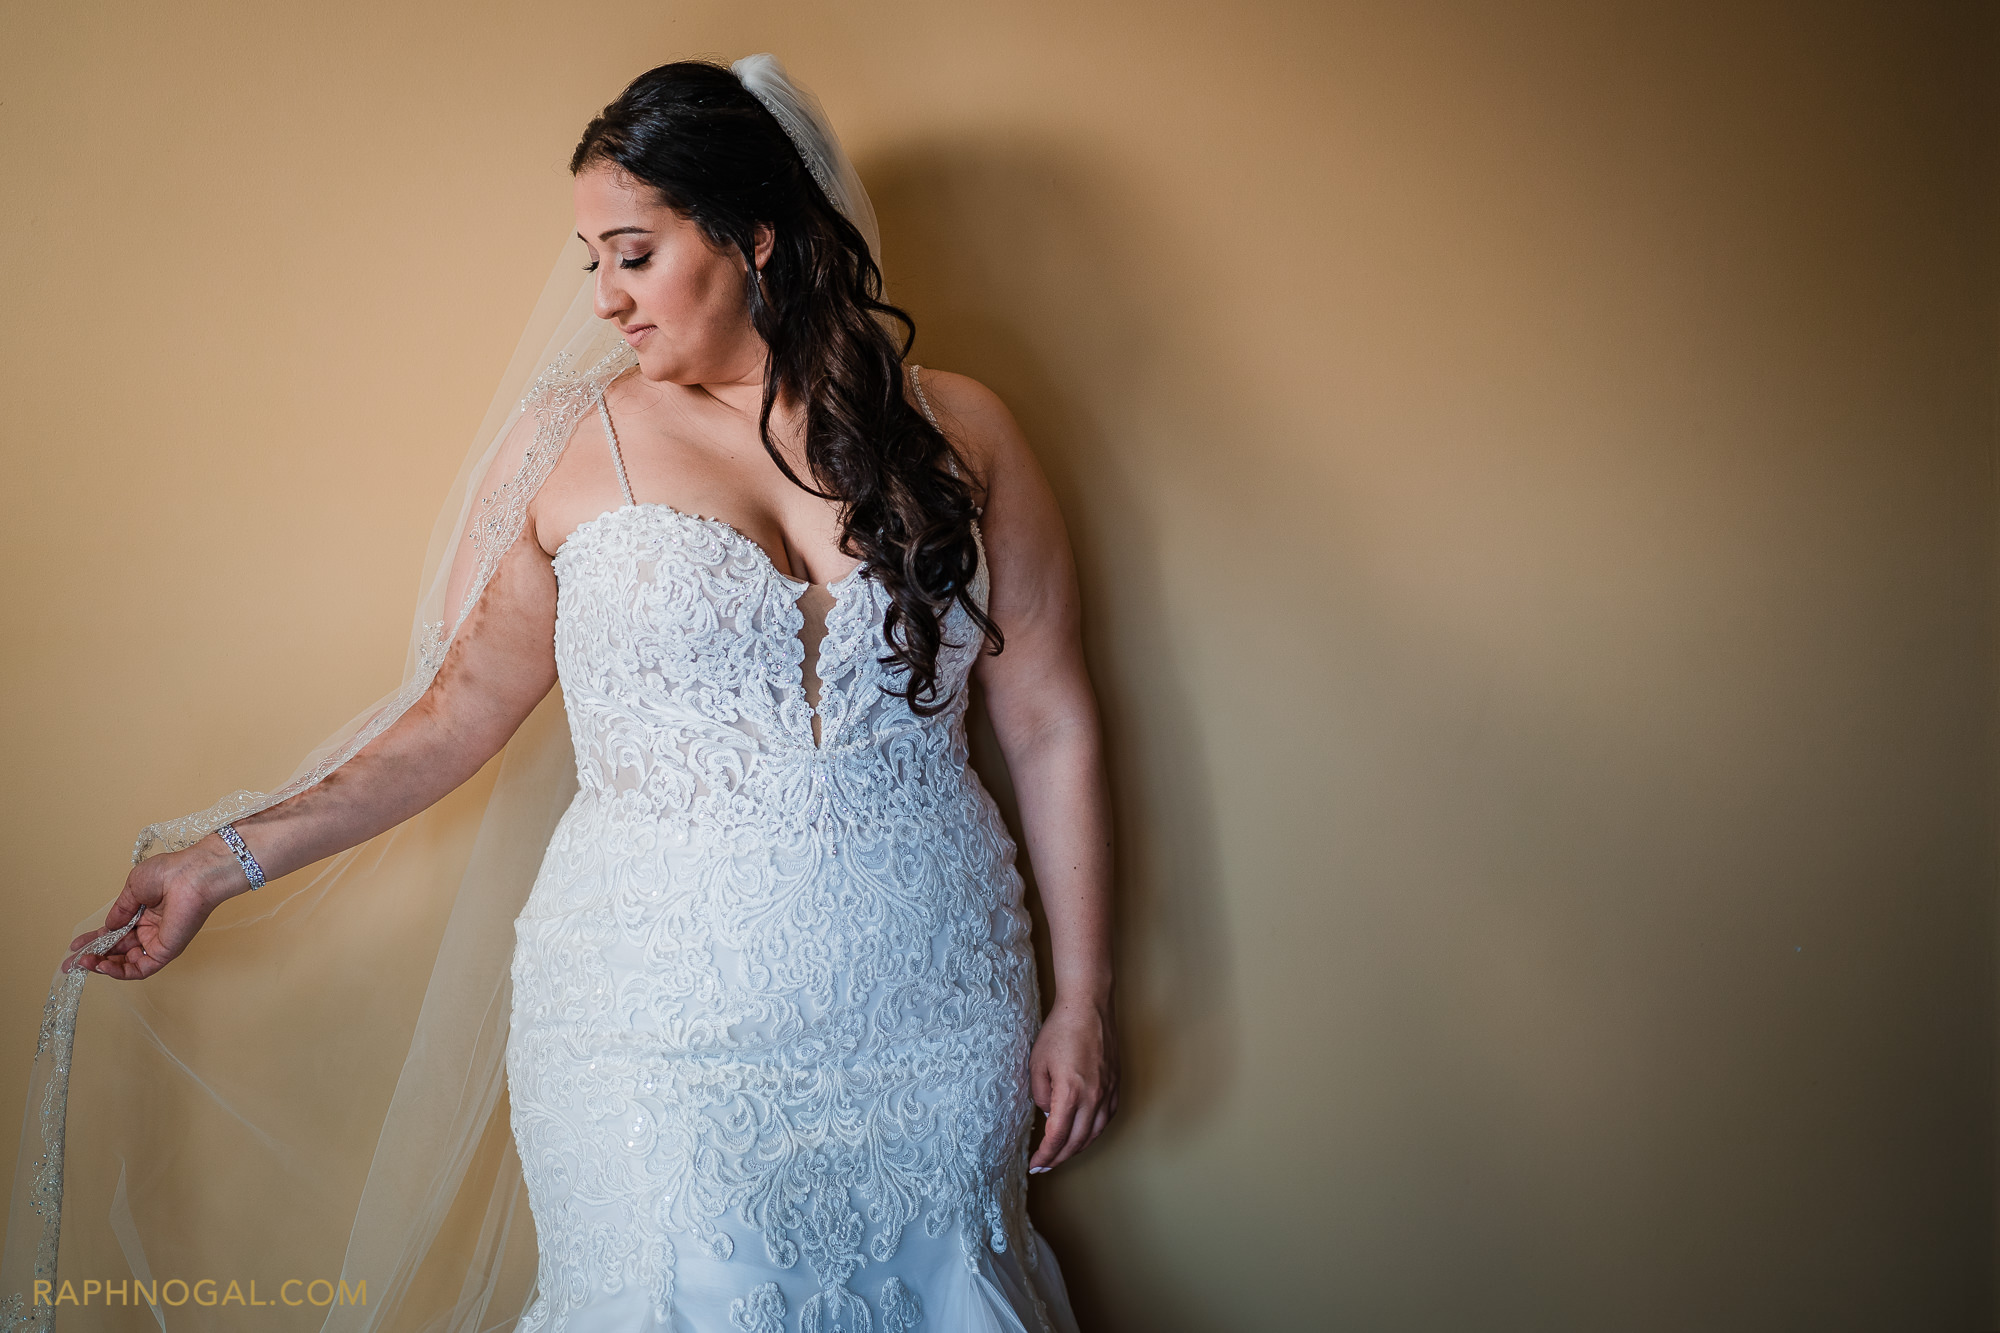 Bride playing with veil against yellow wall